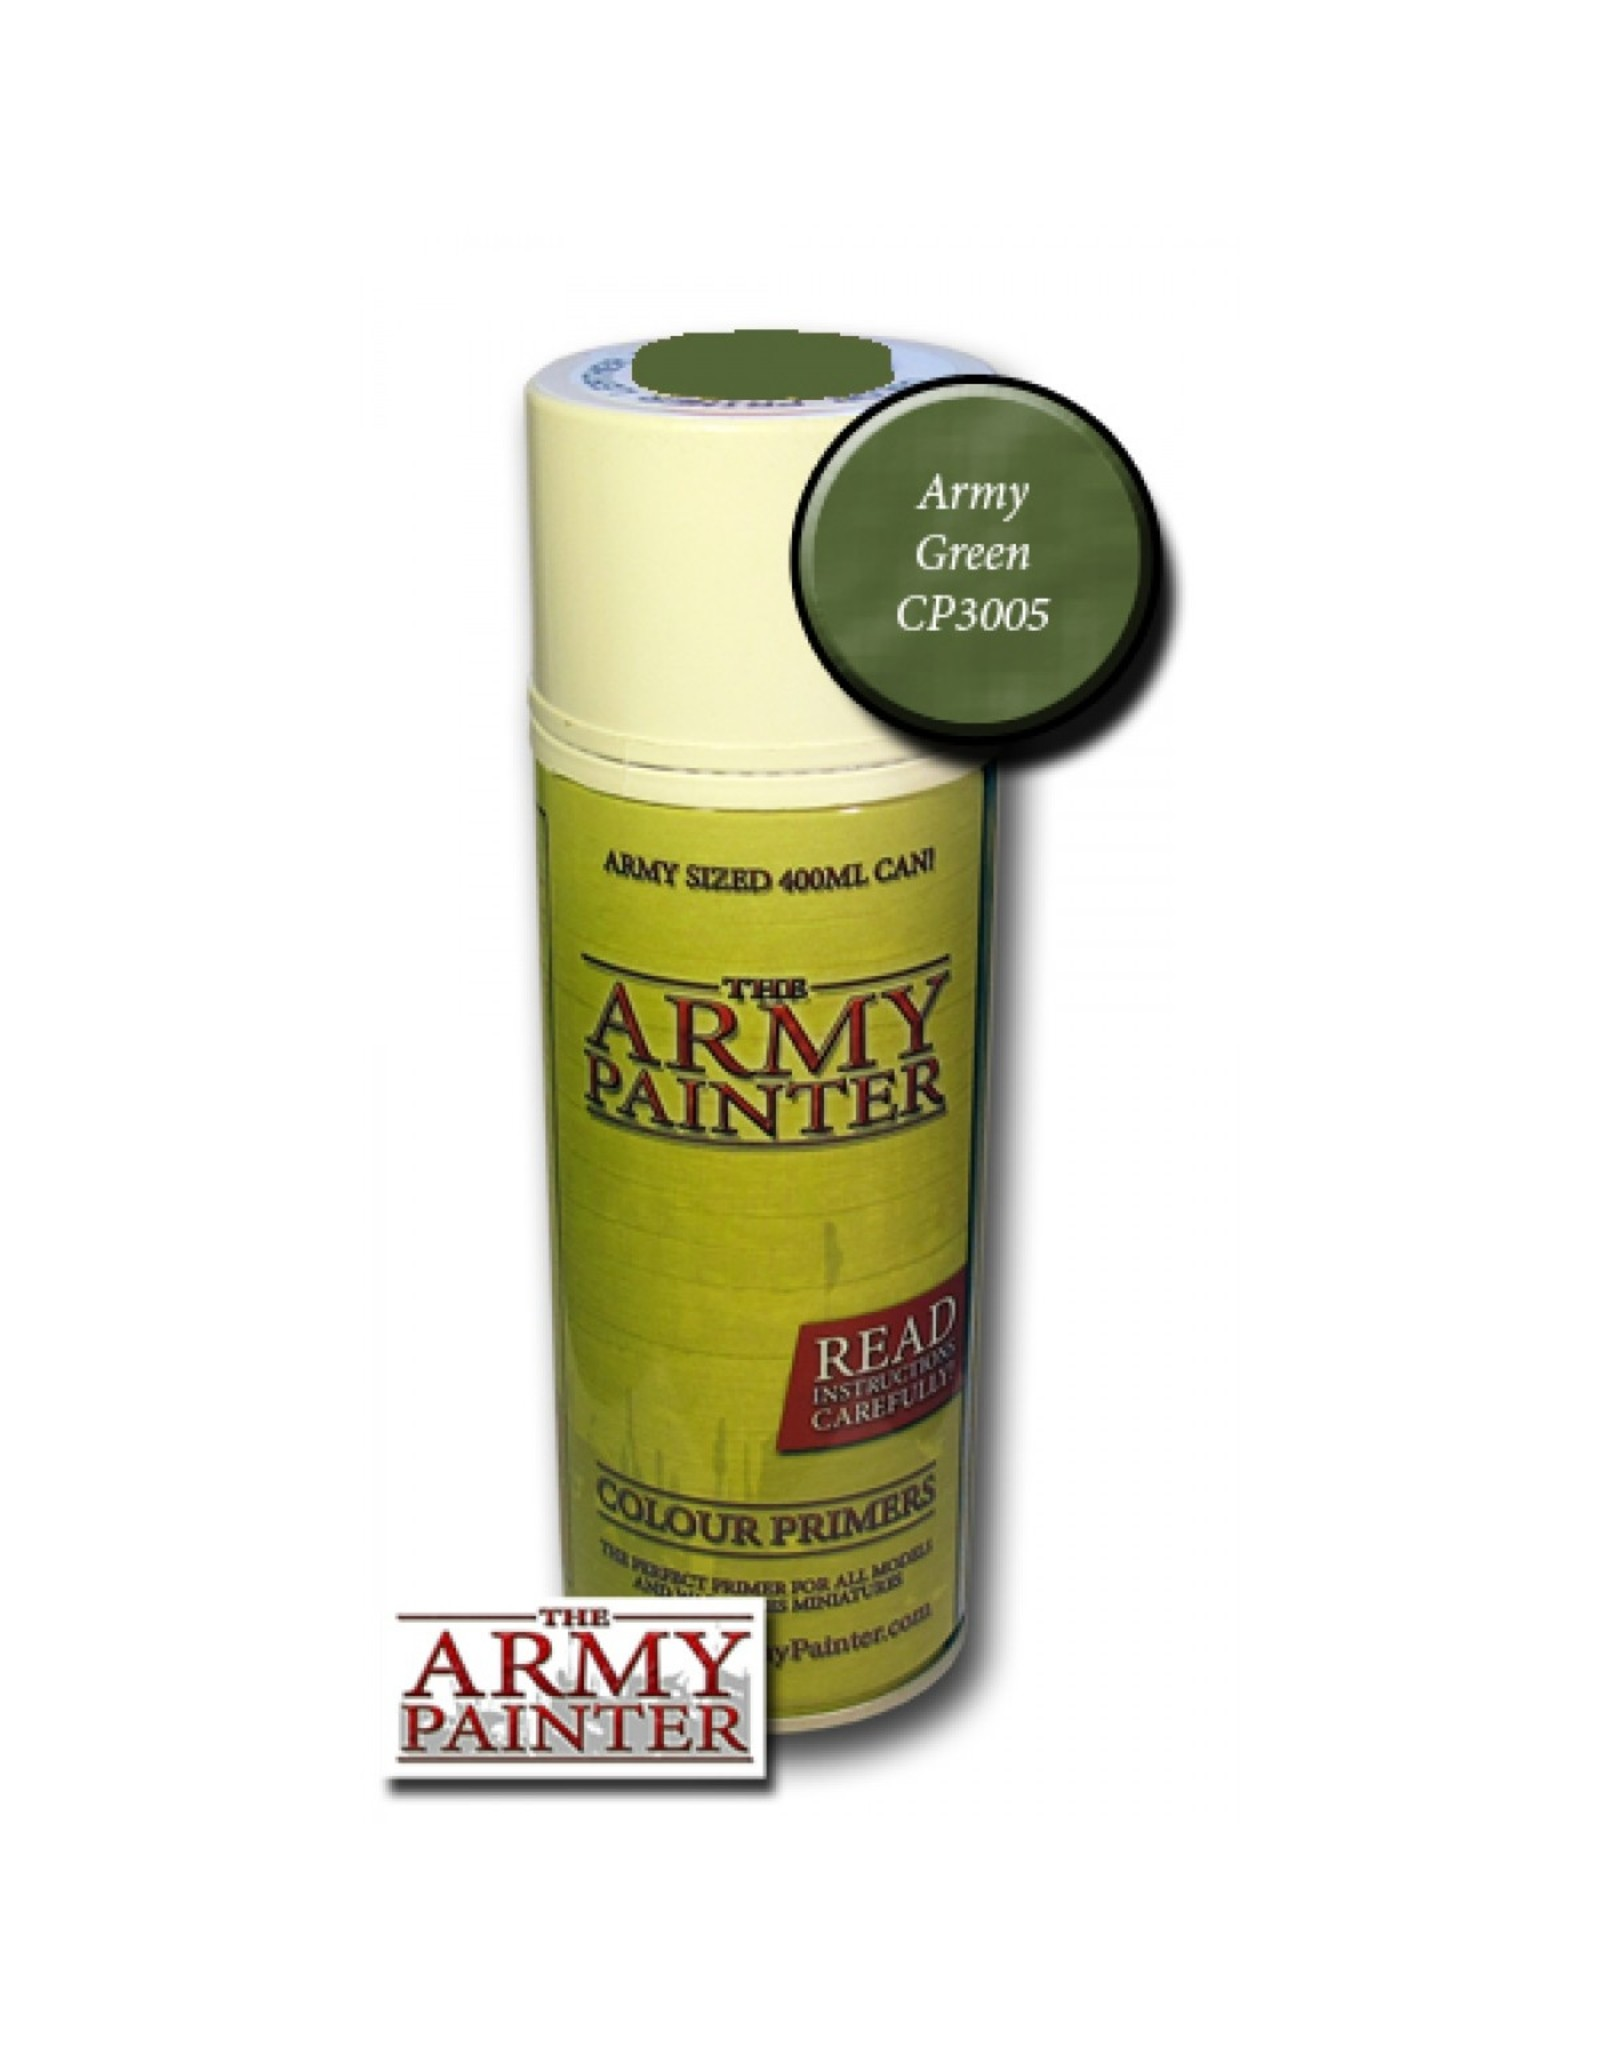 THE ARMY PAINTER ARMY PAINTER COLOR PRIMER ARMY GREEN